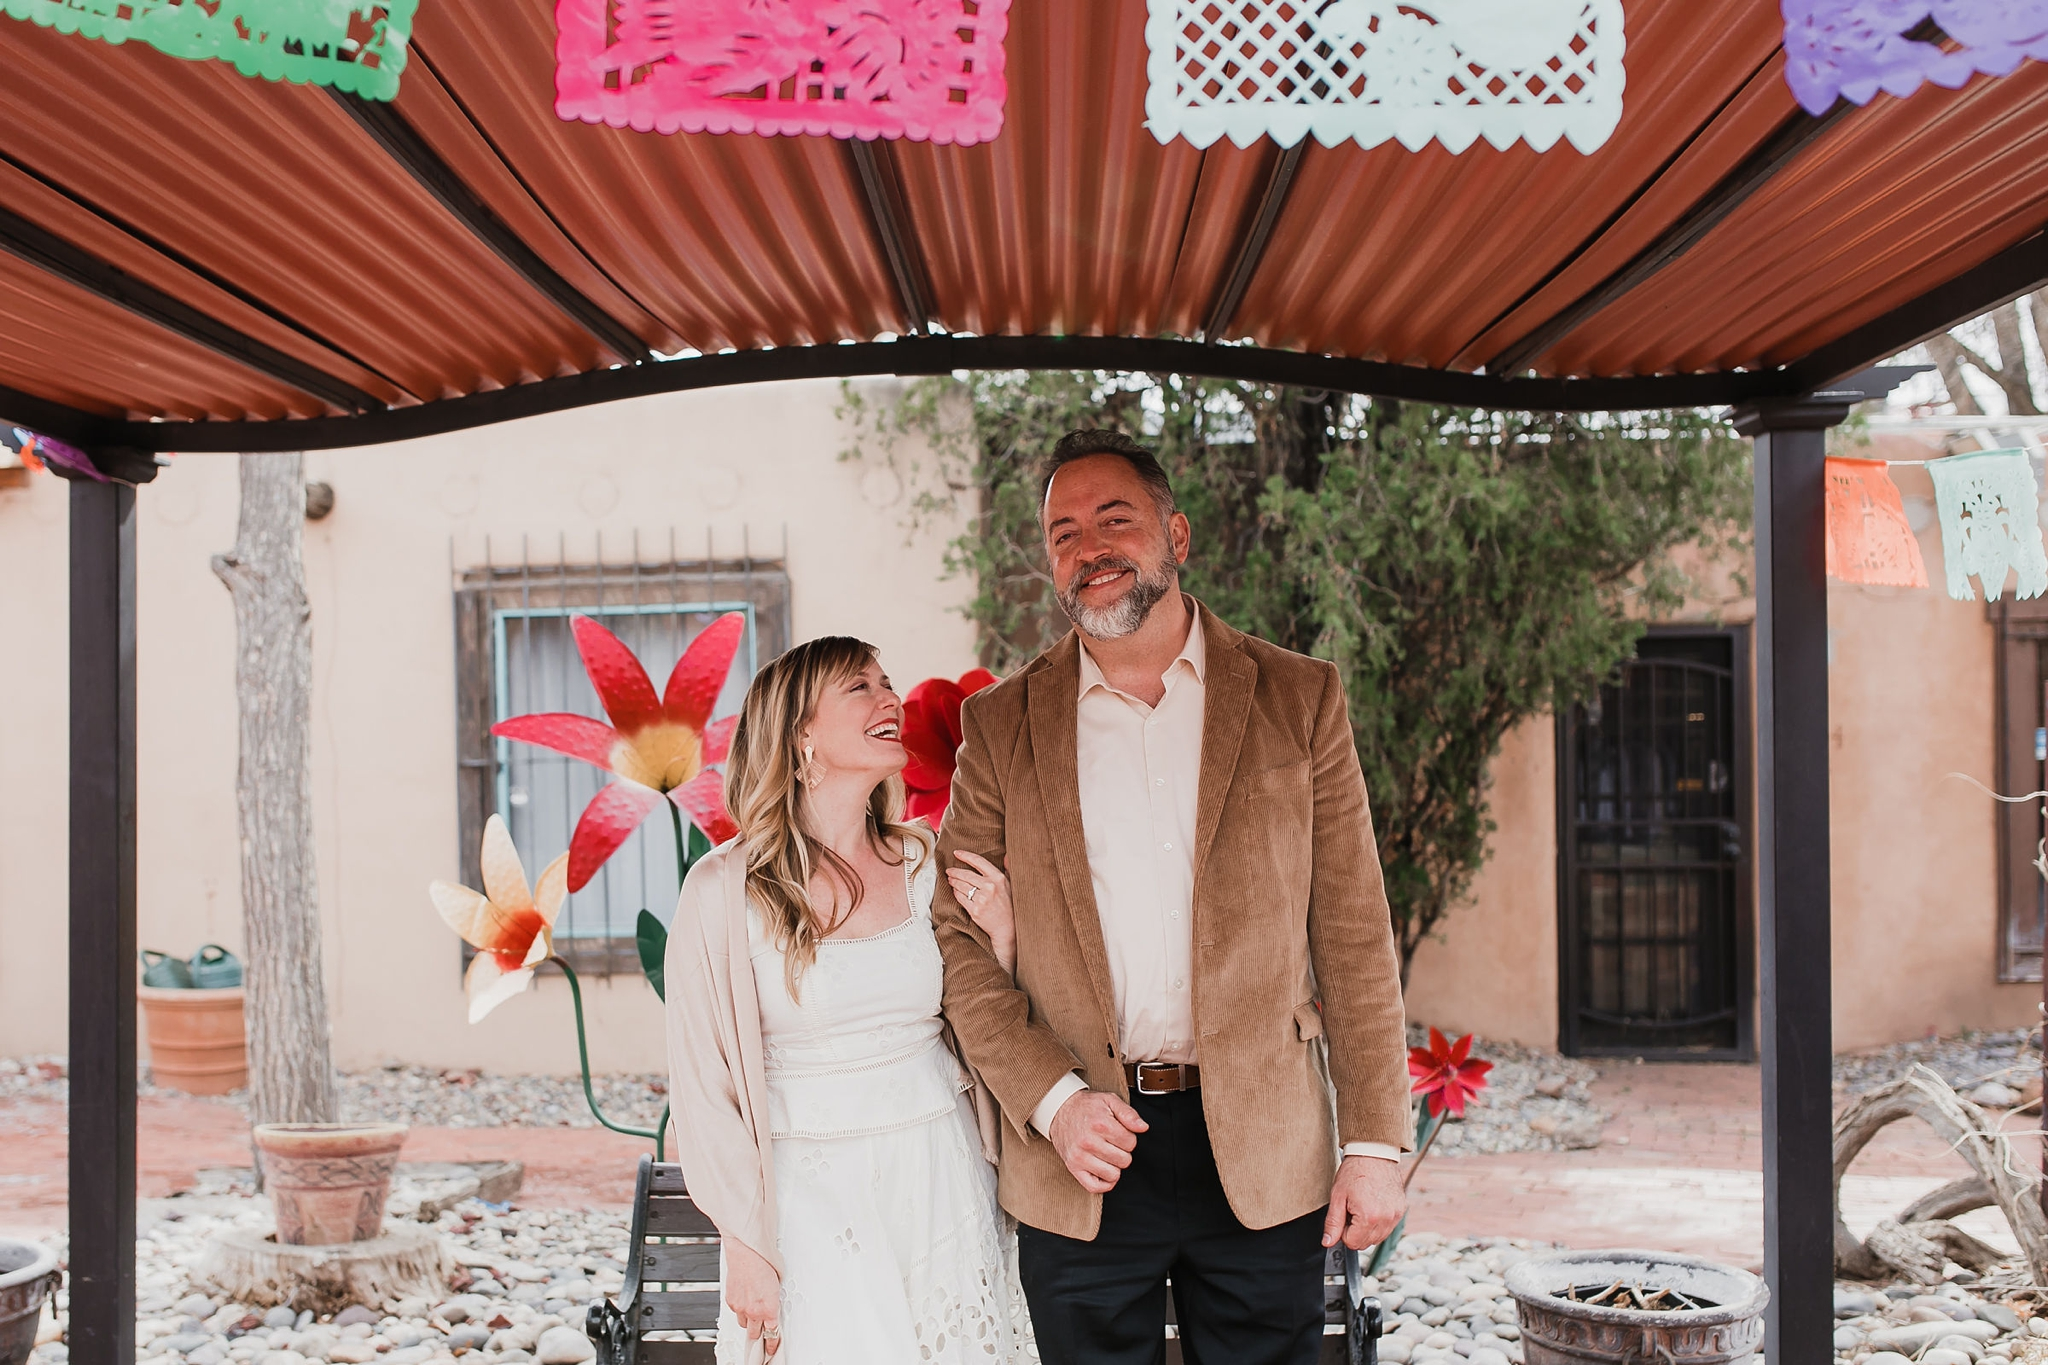 Alicia+lucia+photography+-+albuquerque+wedding+photographer+-+santa+fe+wedding+photography+-+new+mexico+wedding+photographer+-+new+mexico+engagement+-+albuquerque+engagement+-+old+town+engagement_0012.jpg